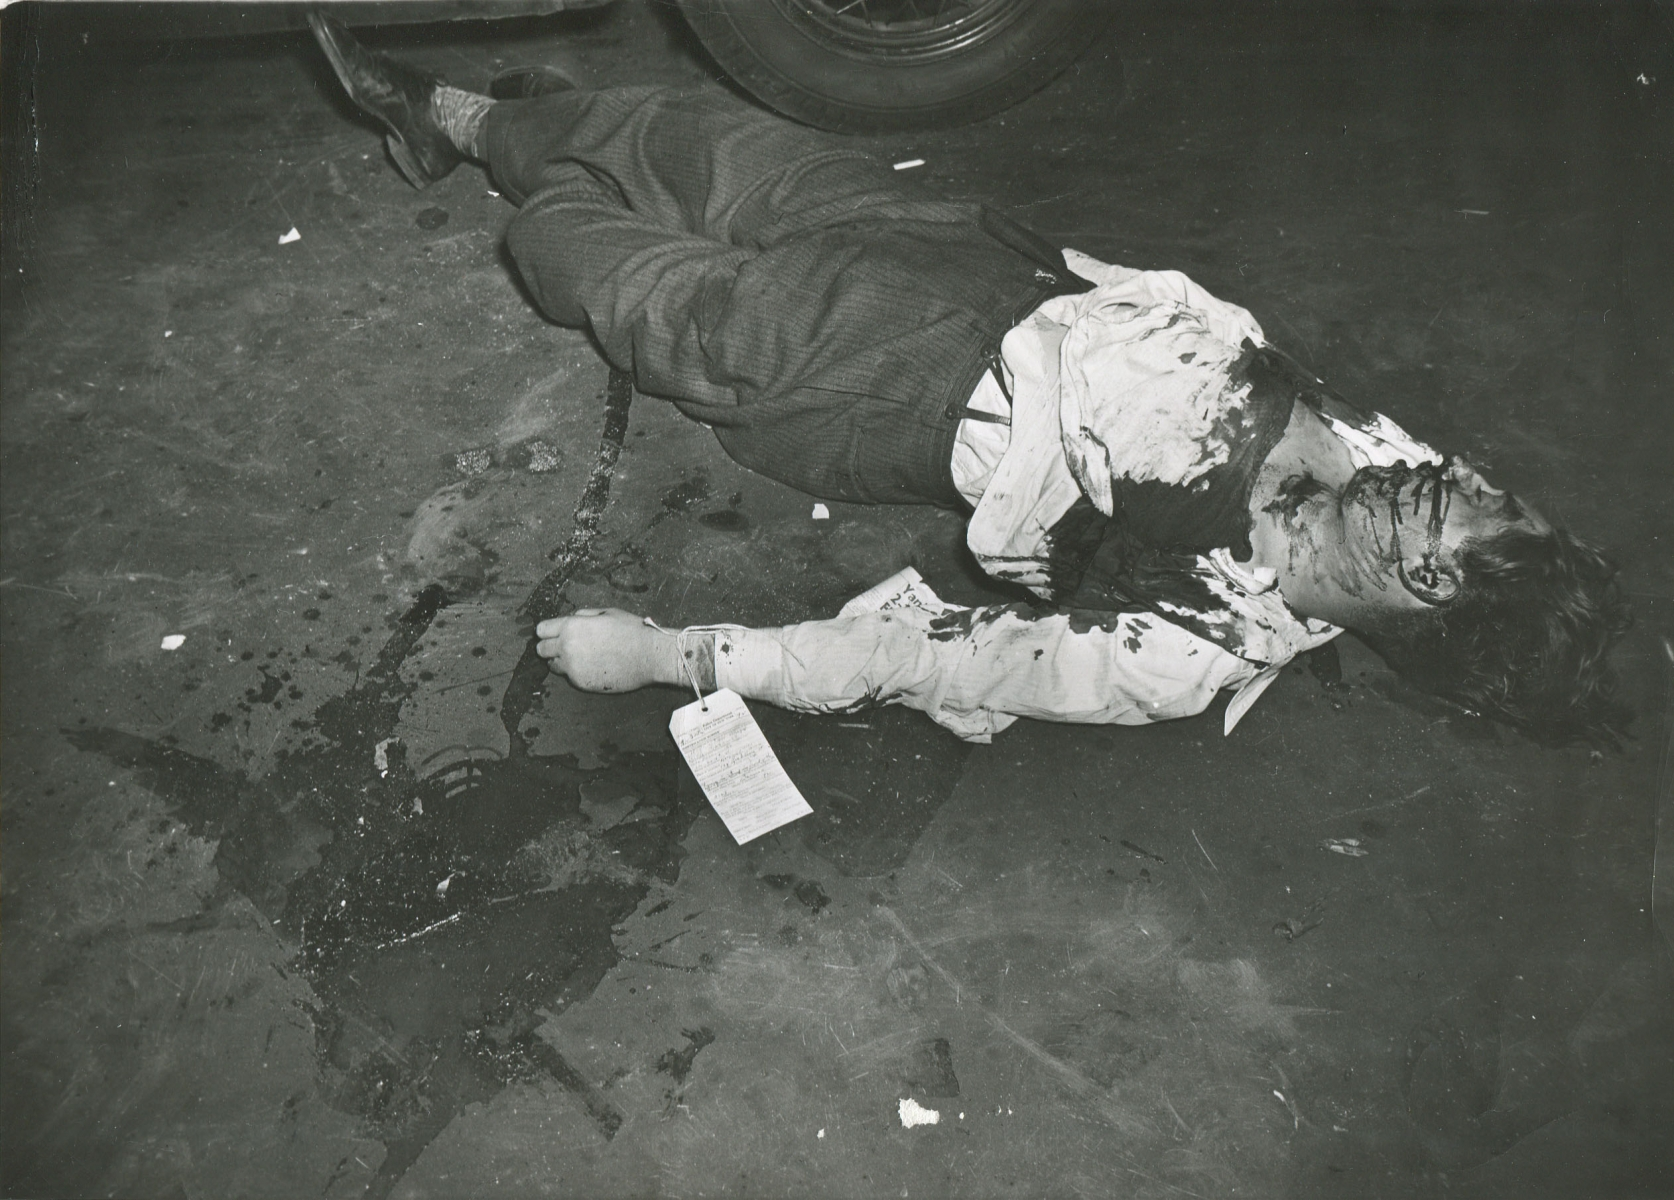 WEEGEE: Naked City - Exhibitions - Steven Kasher Gallery